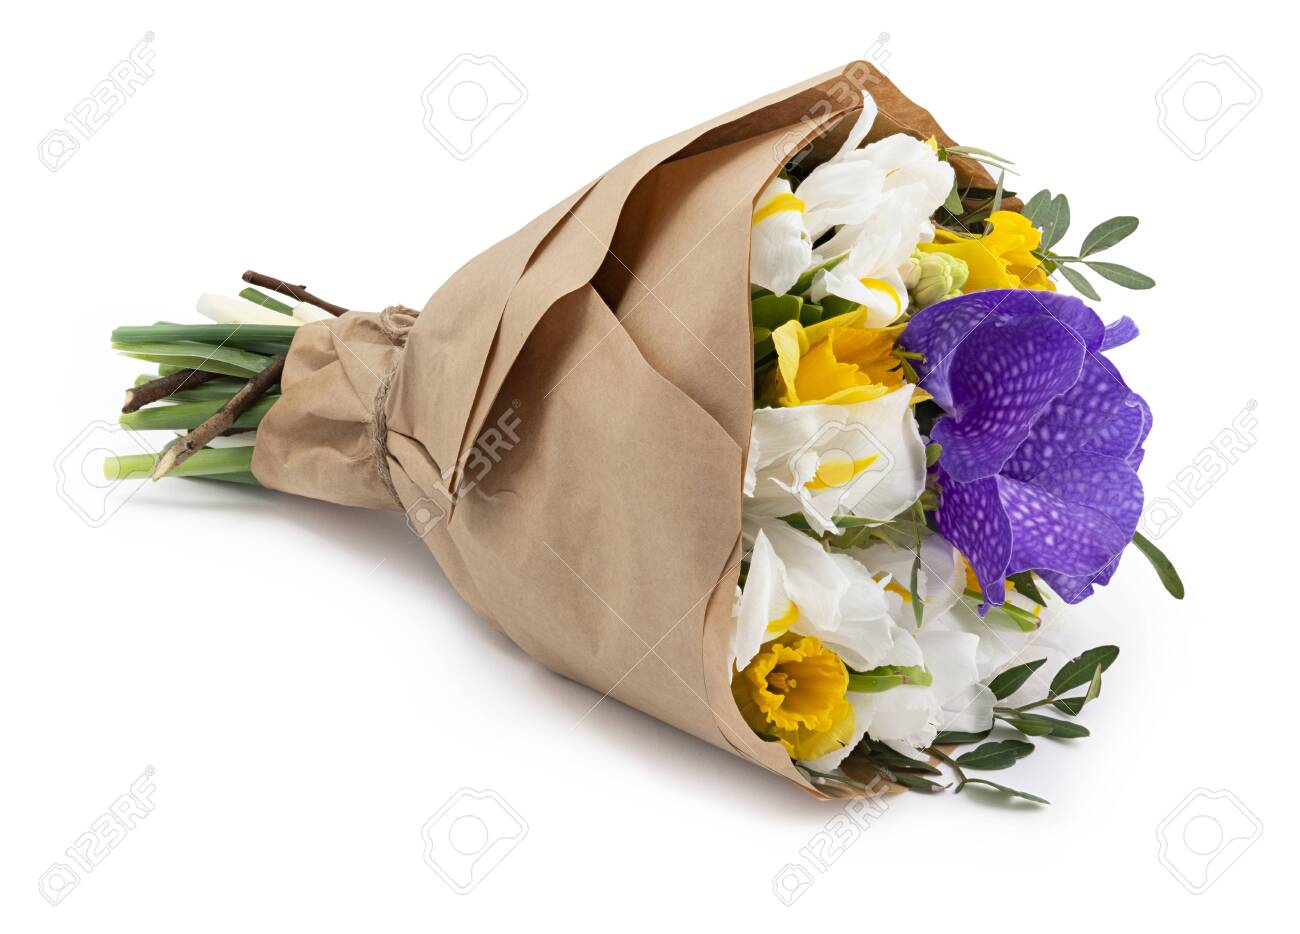 Beautiful flowers bouquets wrapped in a craft paper as a gift. Isolated on white background with shadow - 140446163